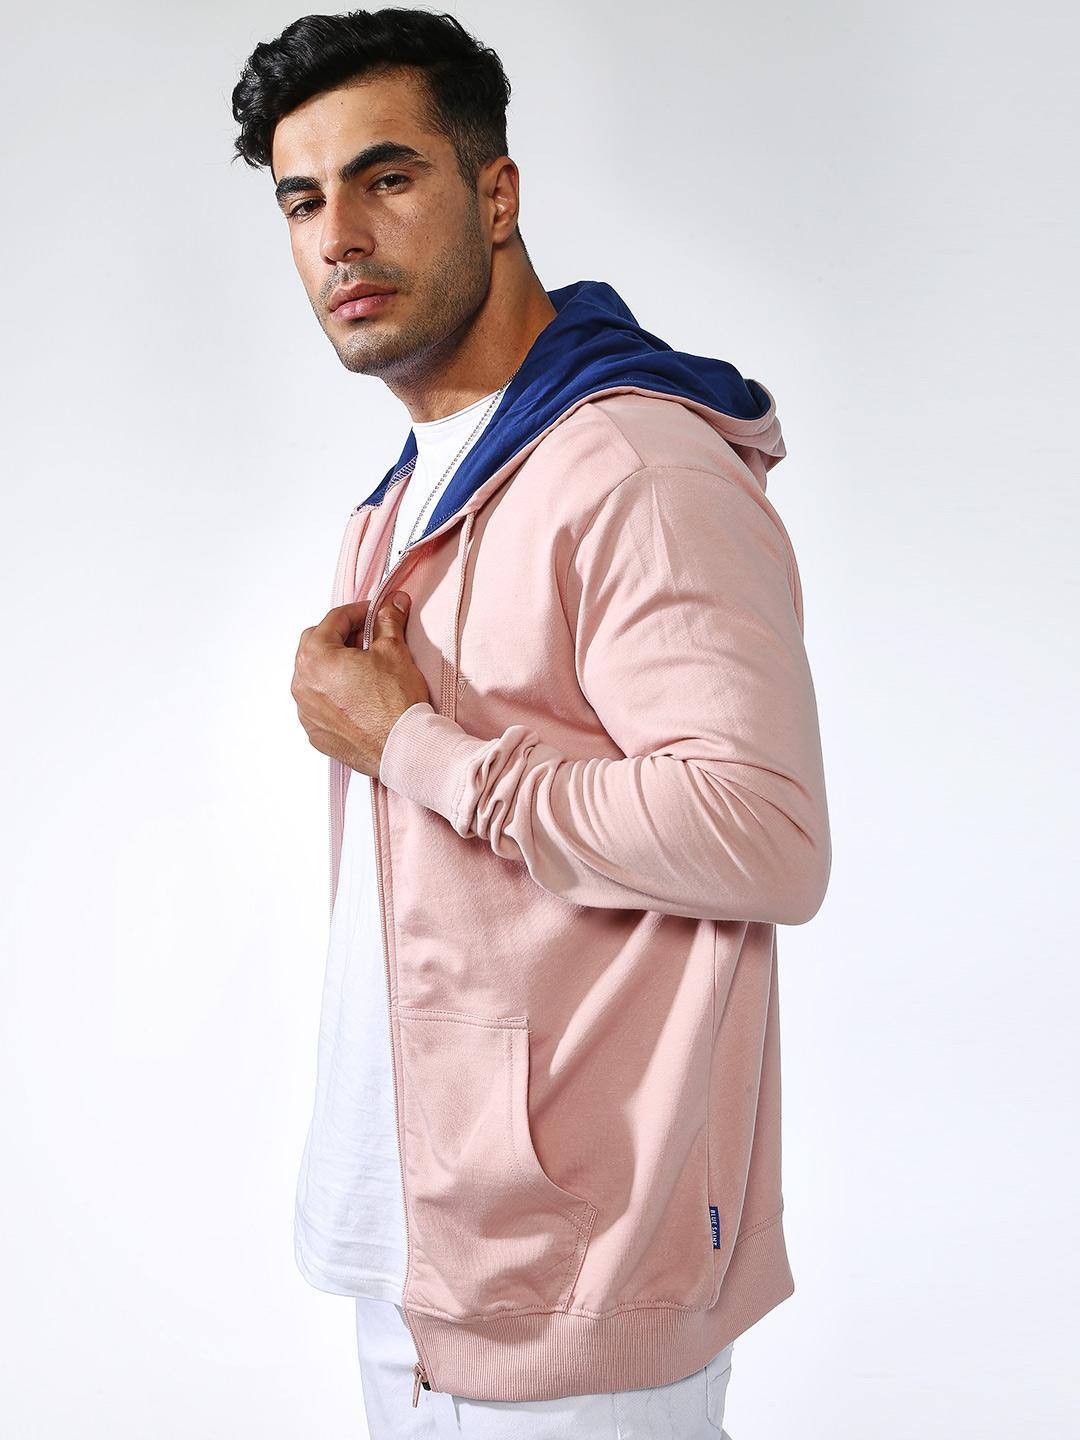 Blue Saint Pink Hooded Basic Sweatshirt 1